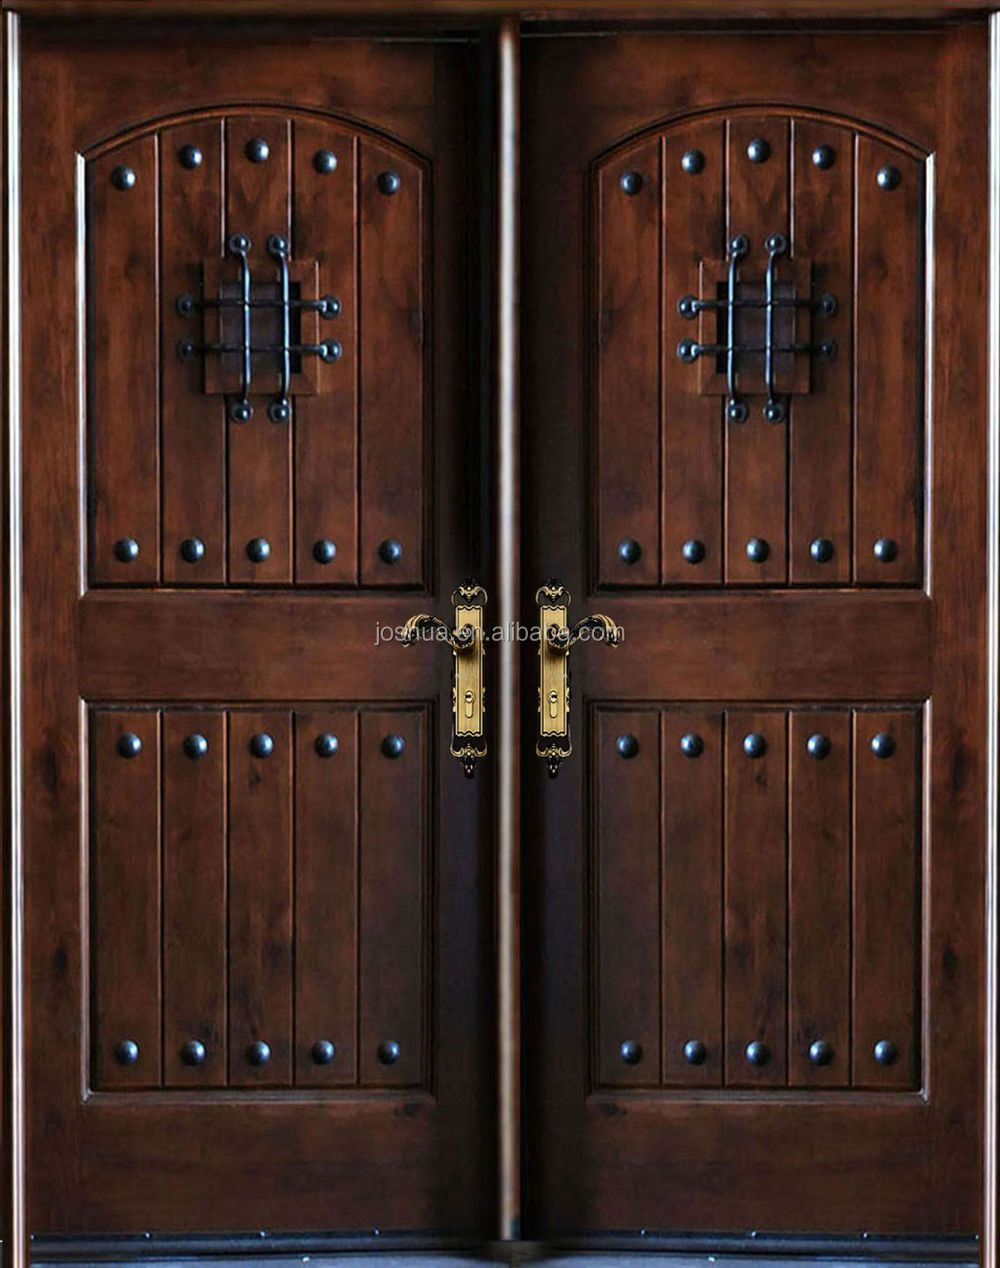 Rustic wrought iron doors, View entry doors, Joshua Product Details ...